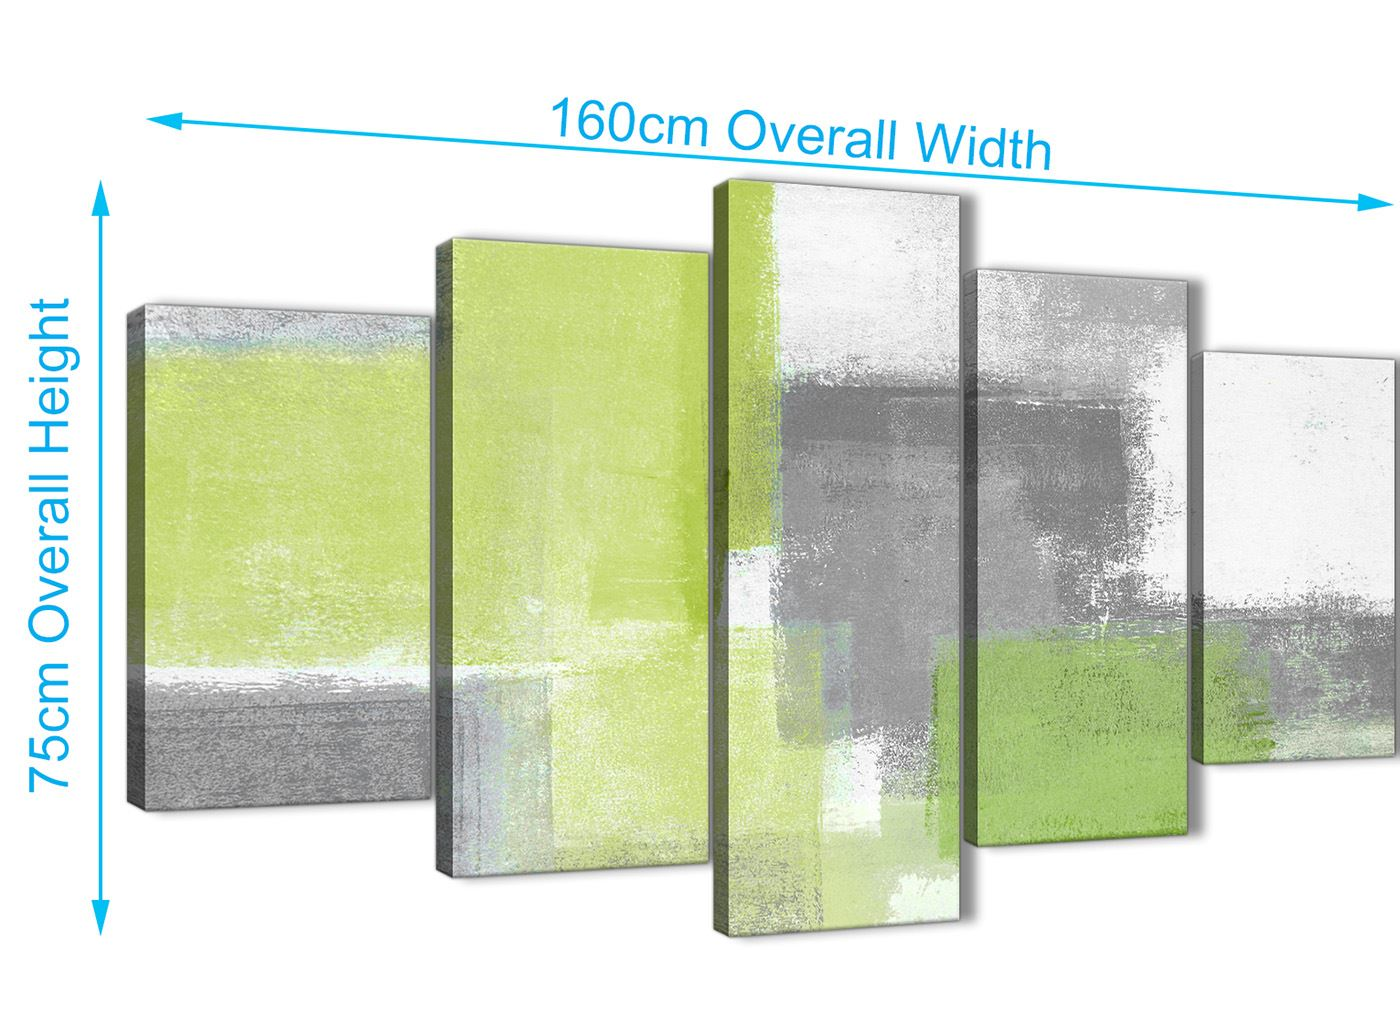 Details About 5 Piece Lime Green Grey Abstract Office Canvas Wall Art Decor 5369 160cm